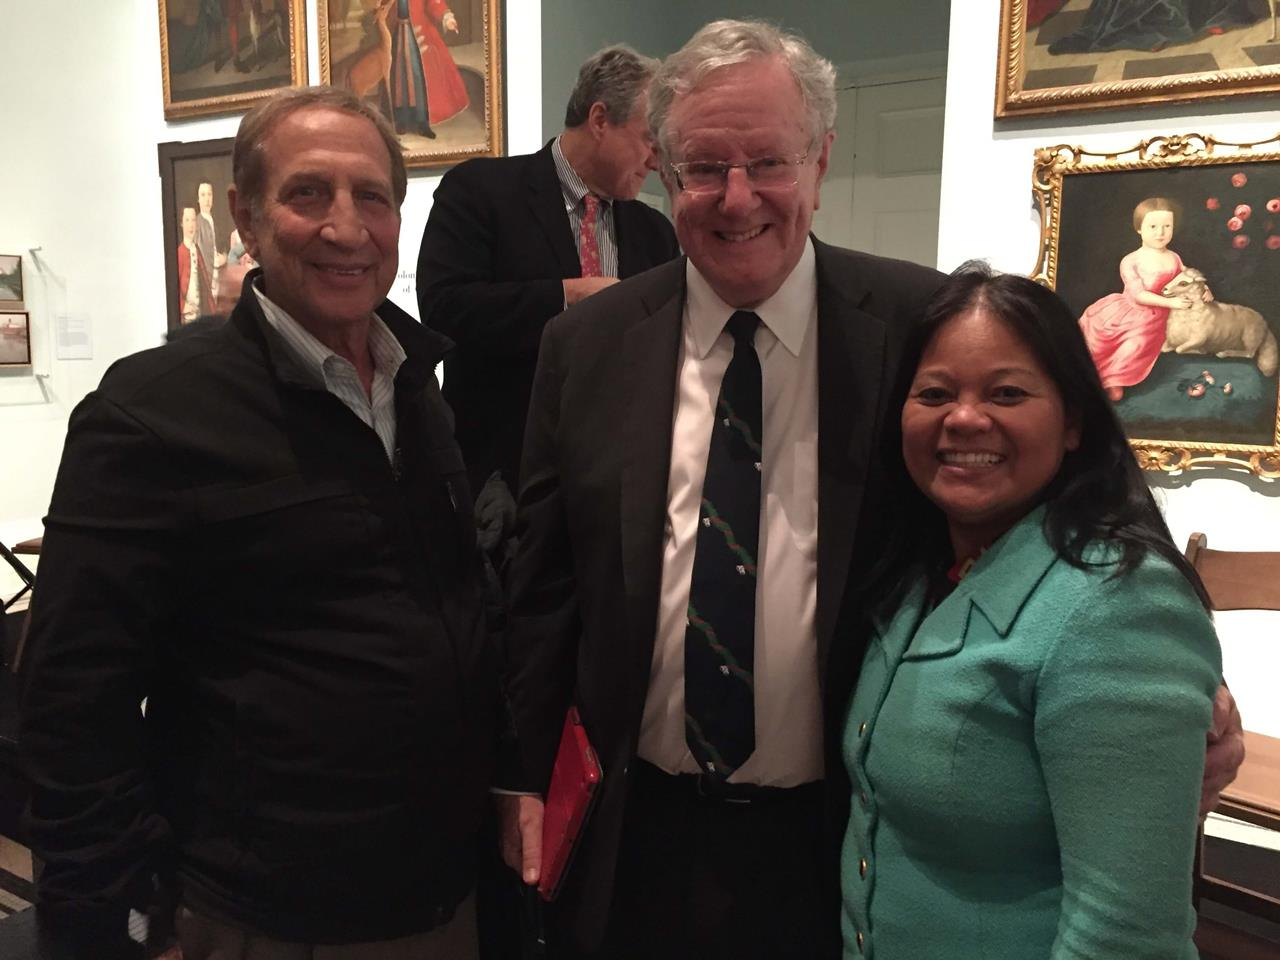 Dan and Elisea with Steve Forbes